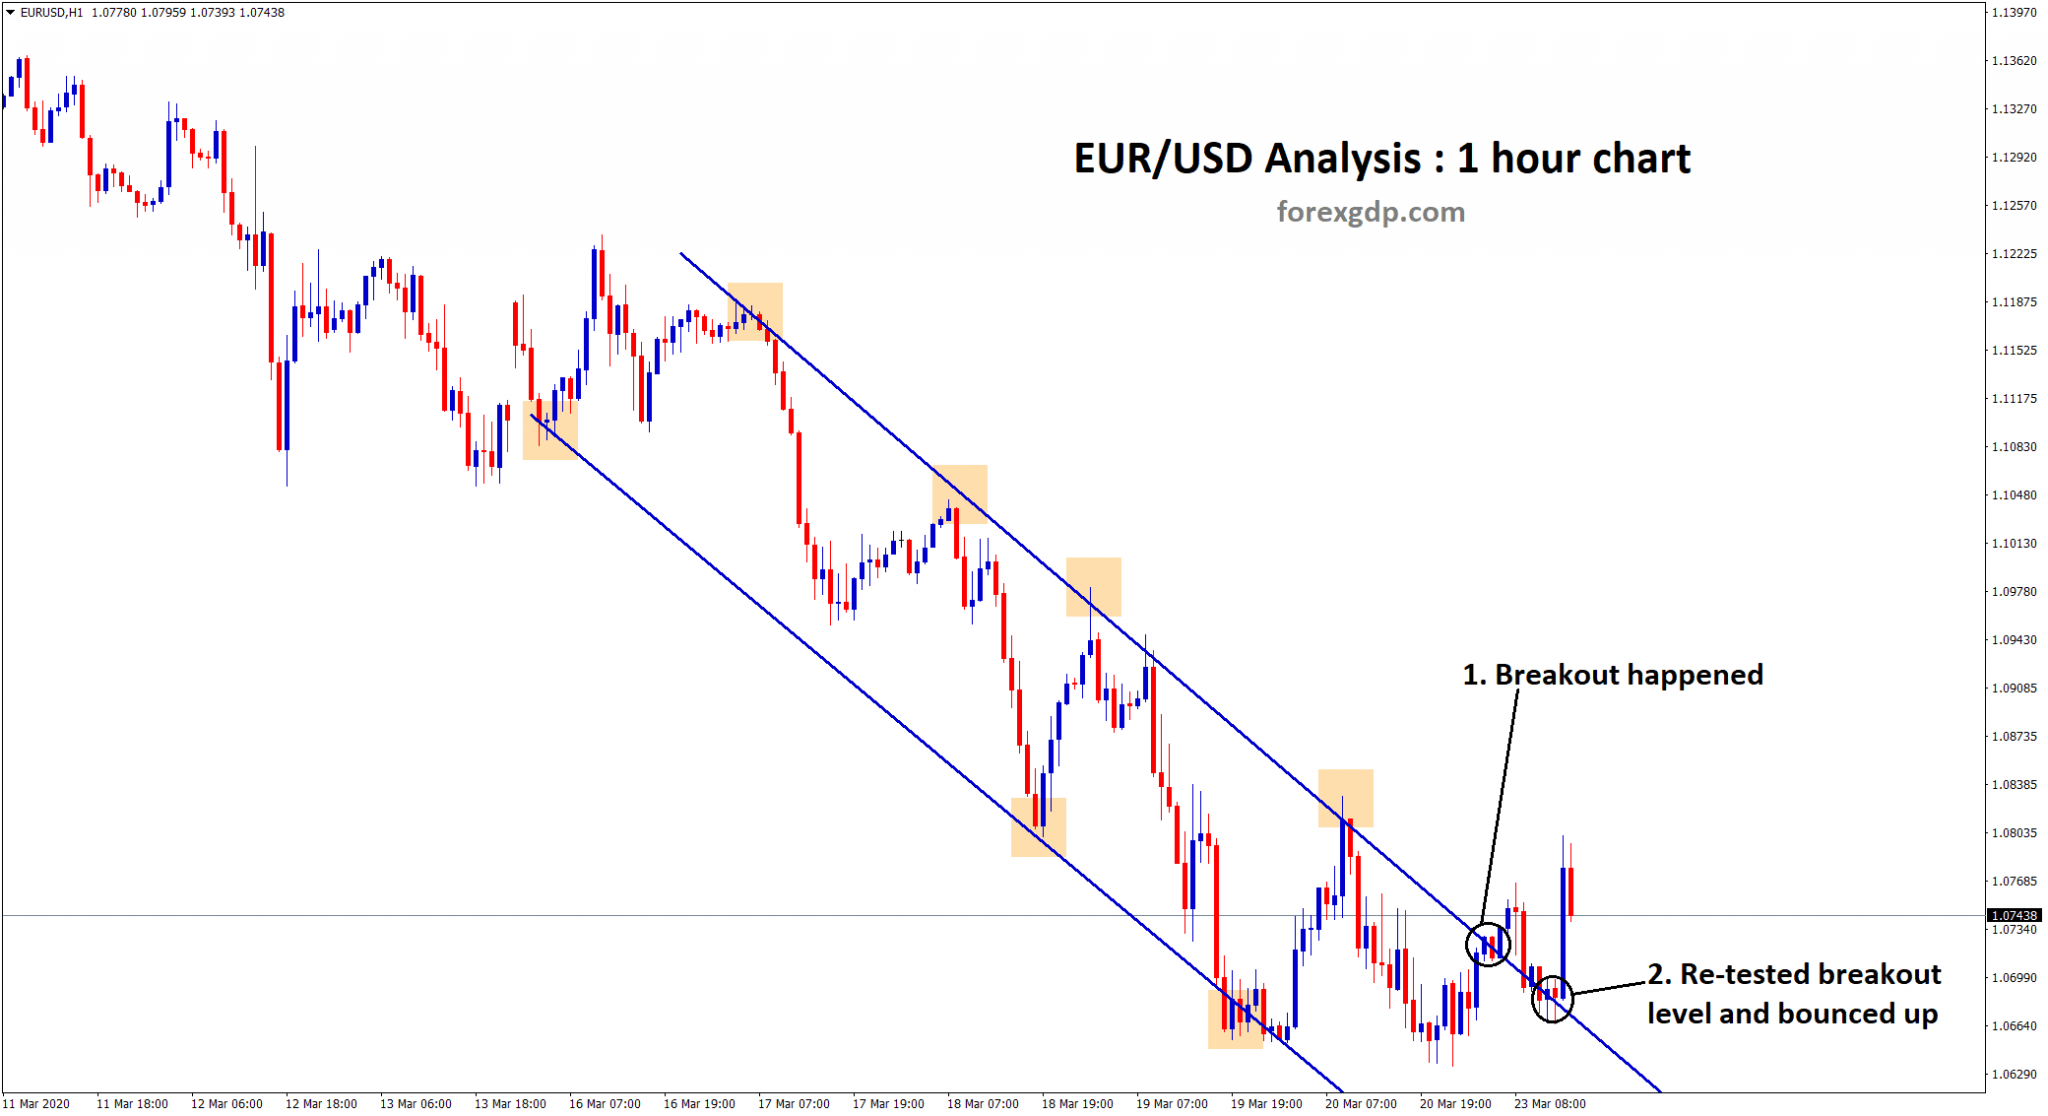 EUR USD breakout and re-test happend